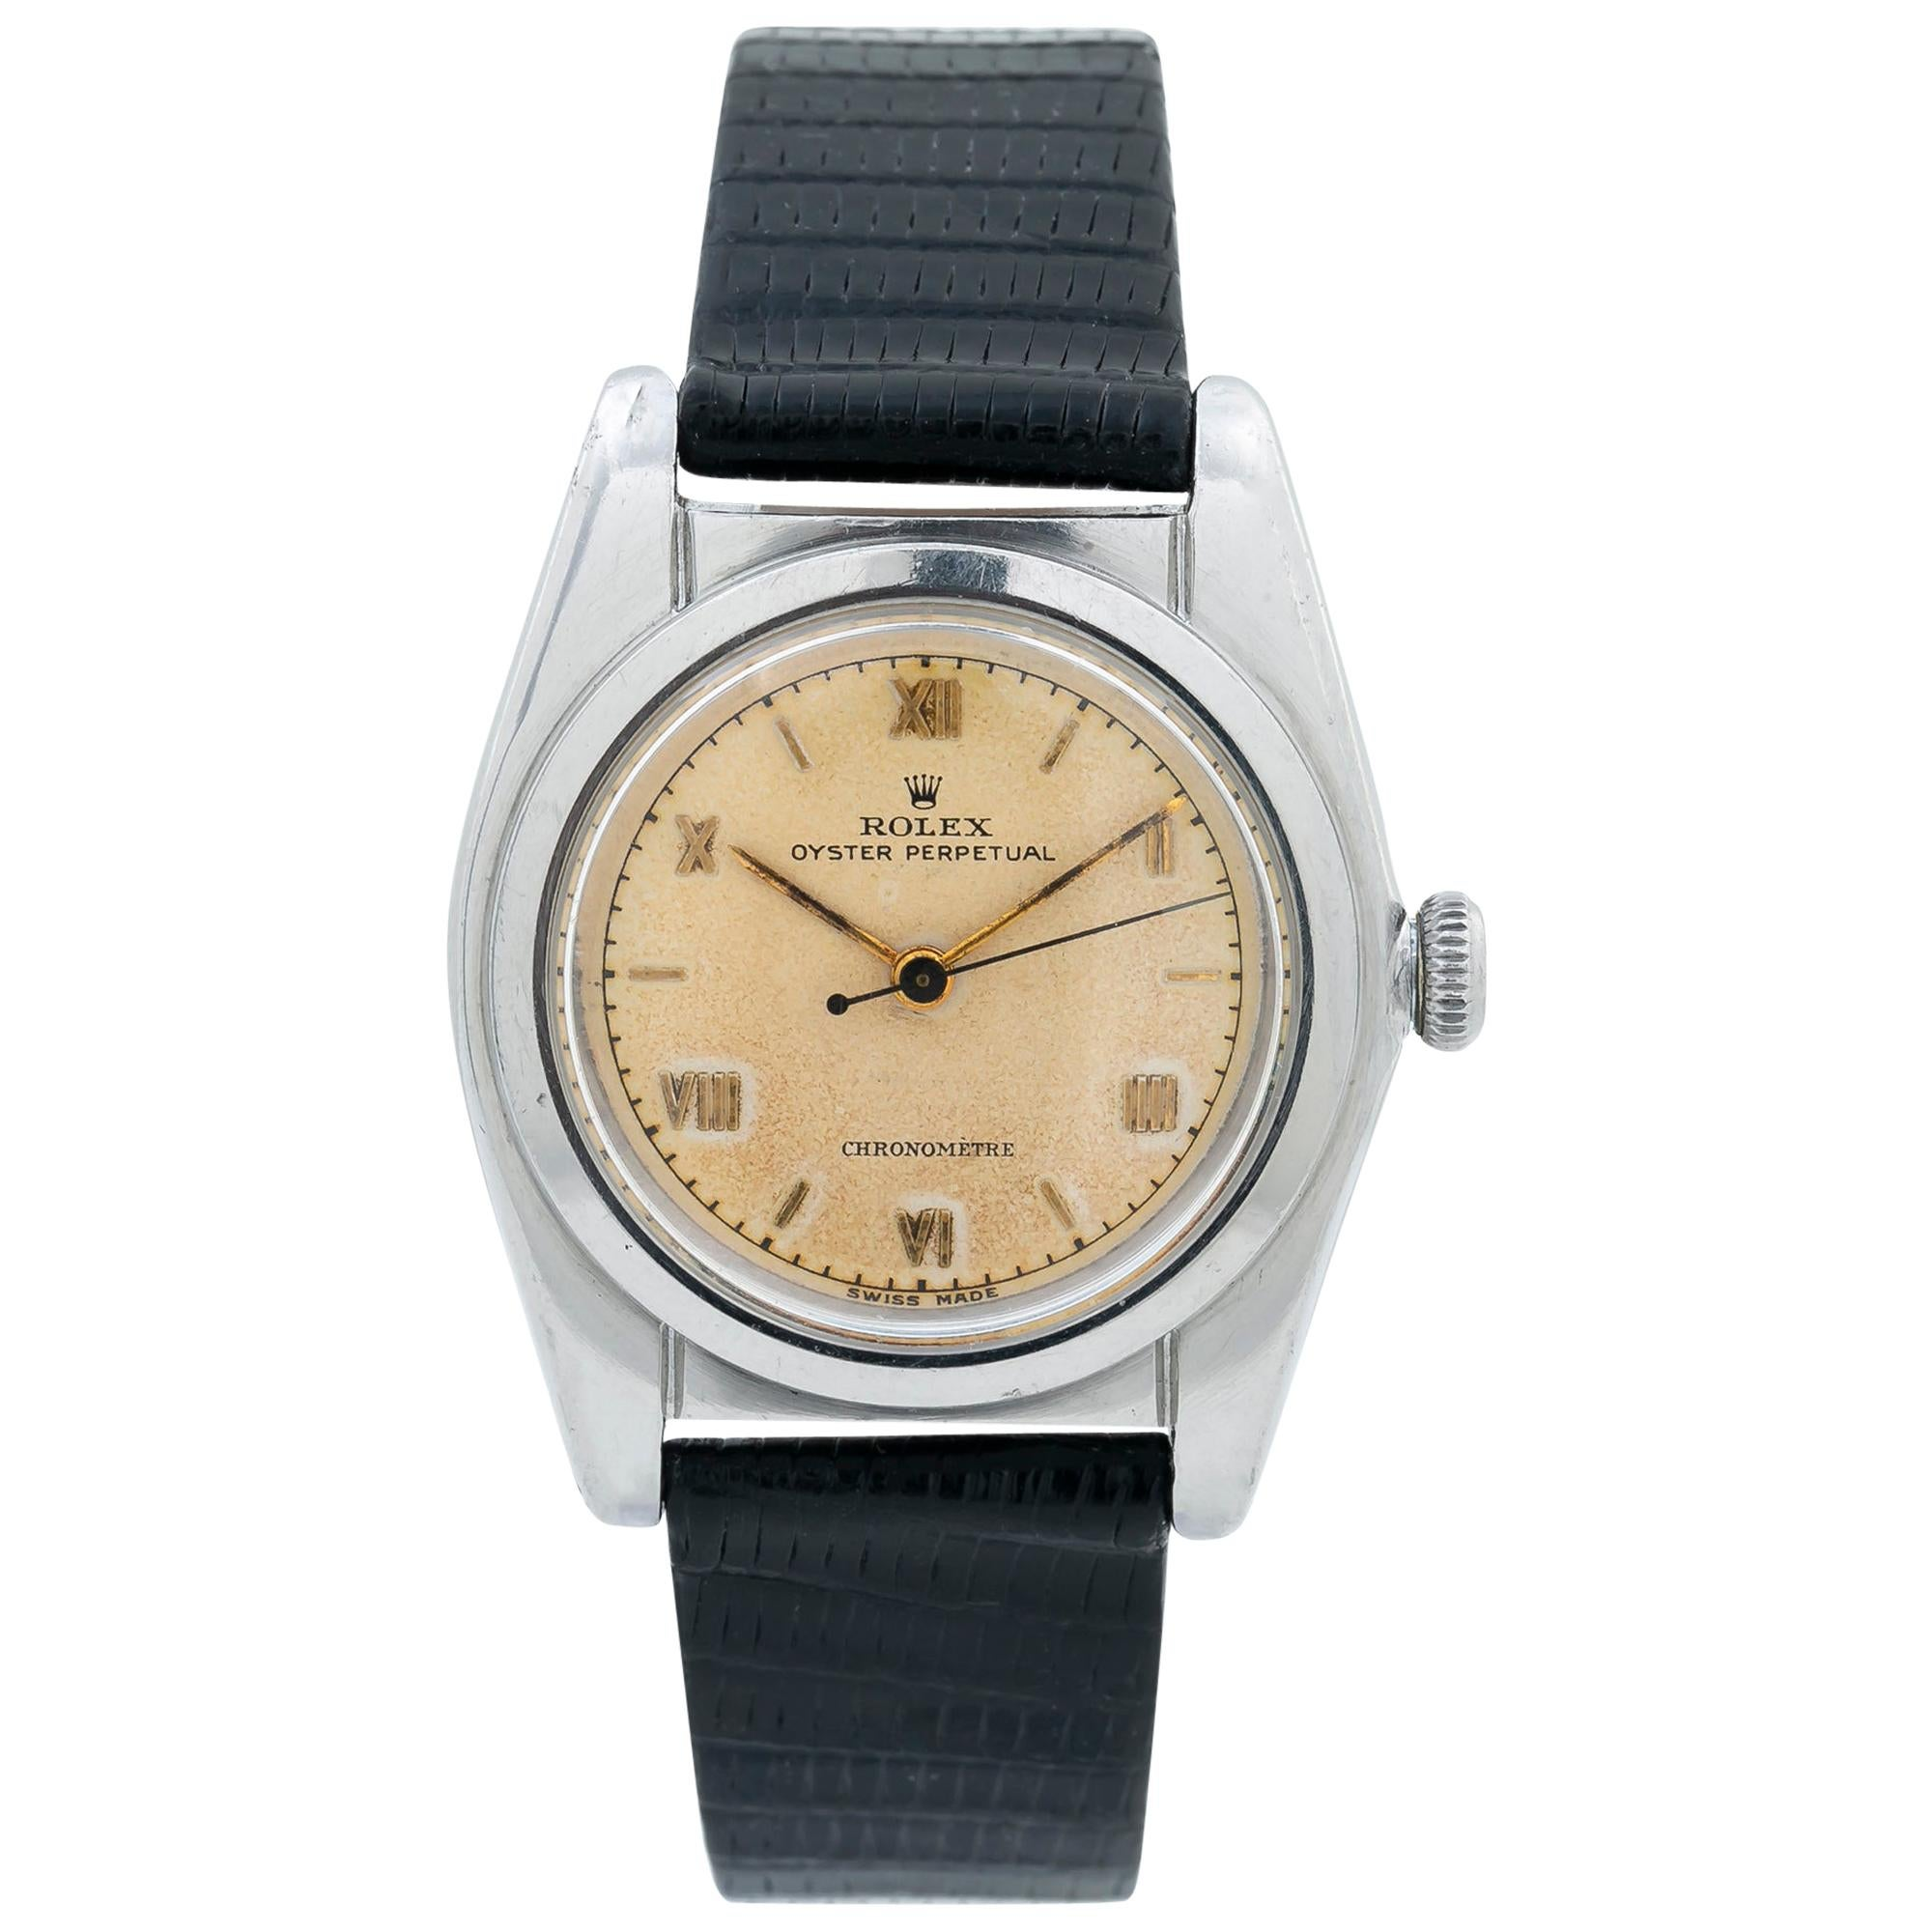 Rolex Oyster Perpetual 2940 Bubble Back Vintage Patina Automatic Watch SS